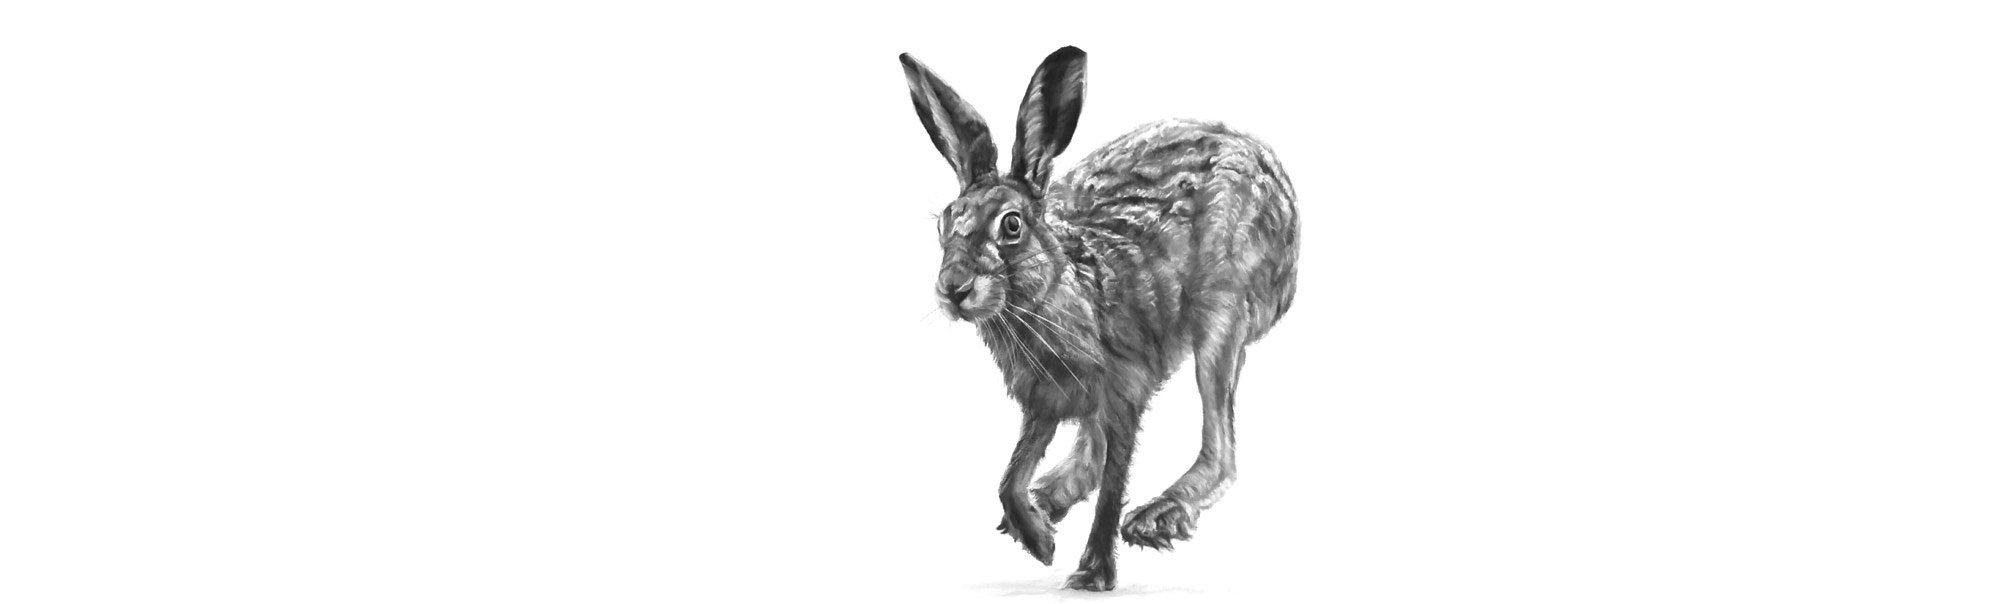 lucy-boydell-hare-drawing